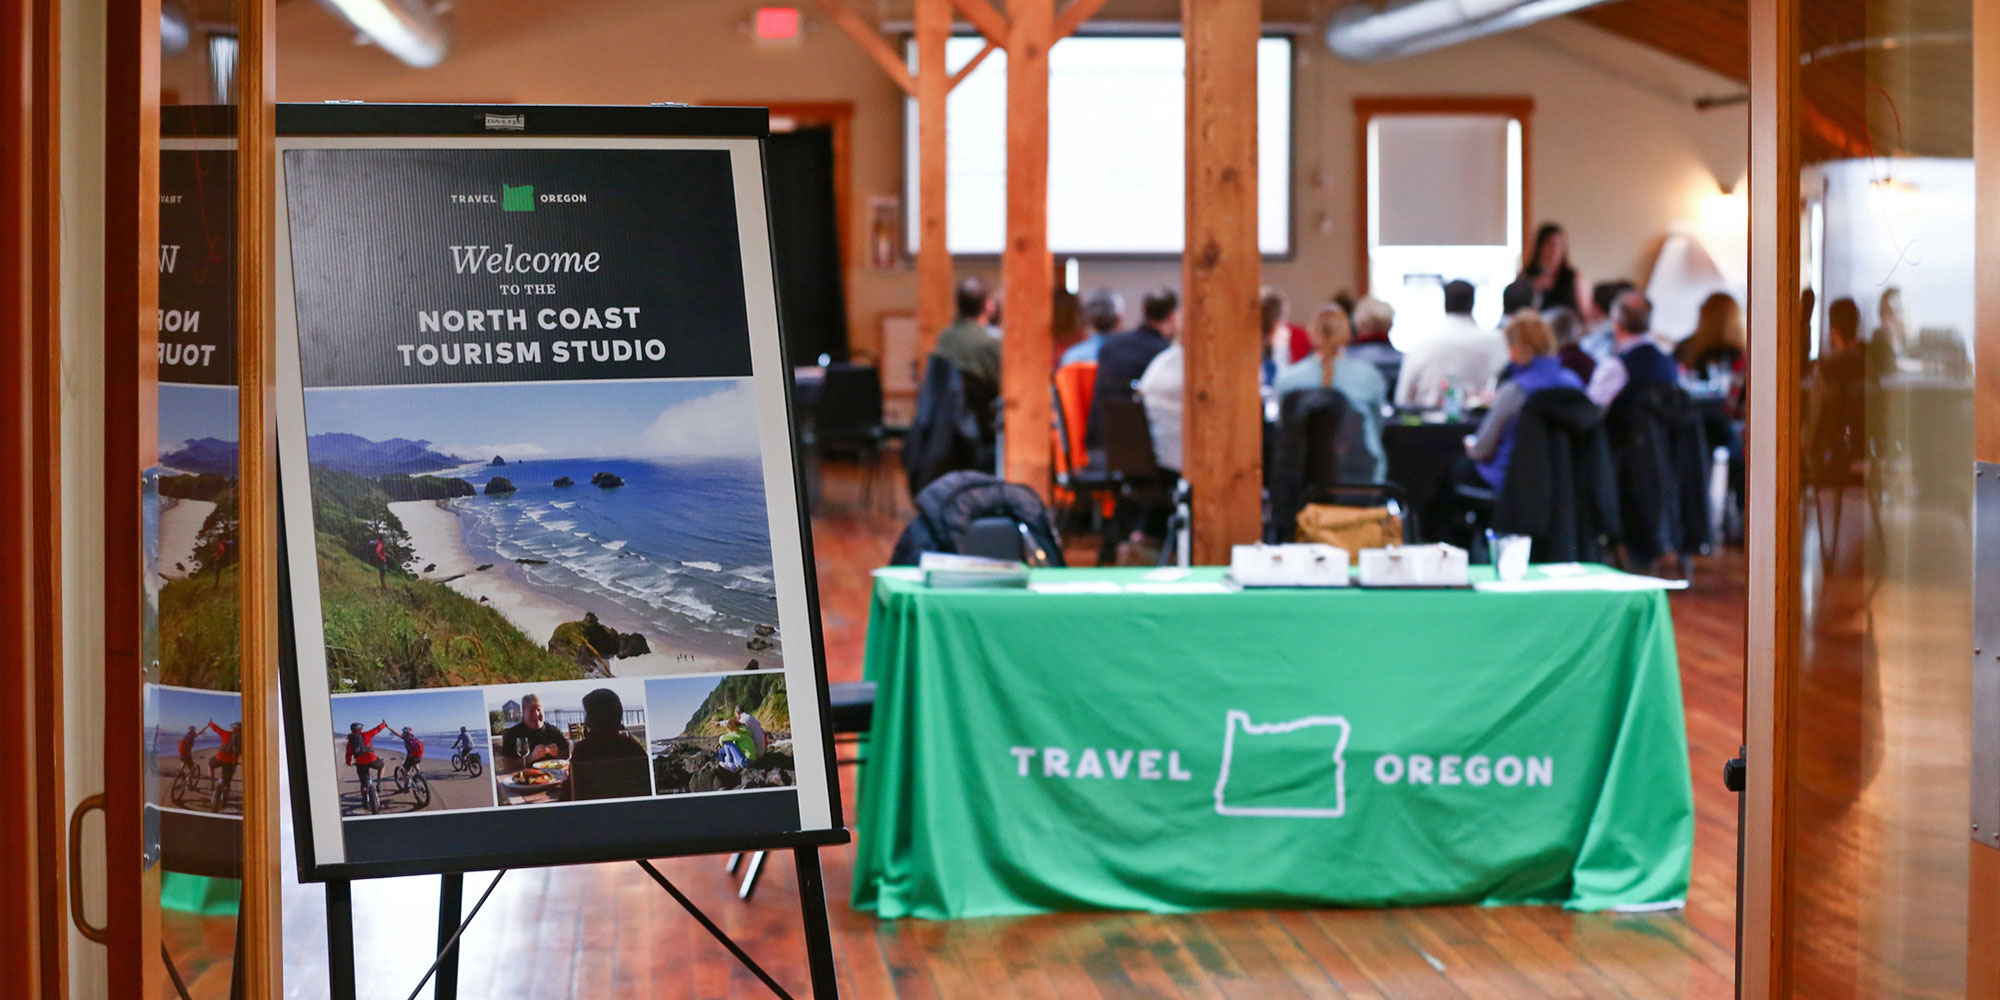 Astoria Travel Oregon - North Coast Tourism Management Network